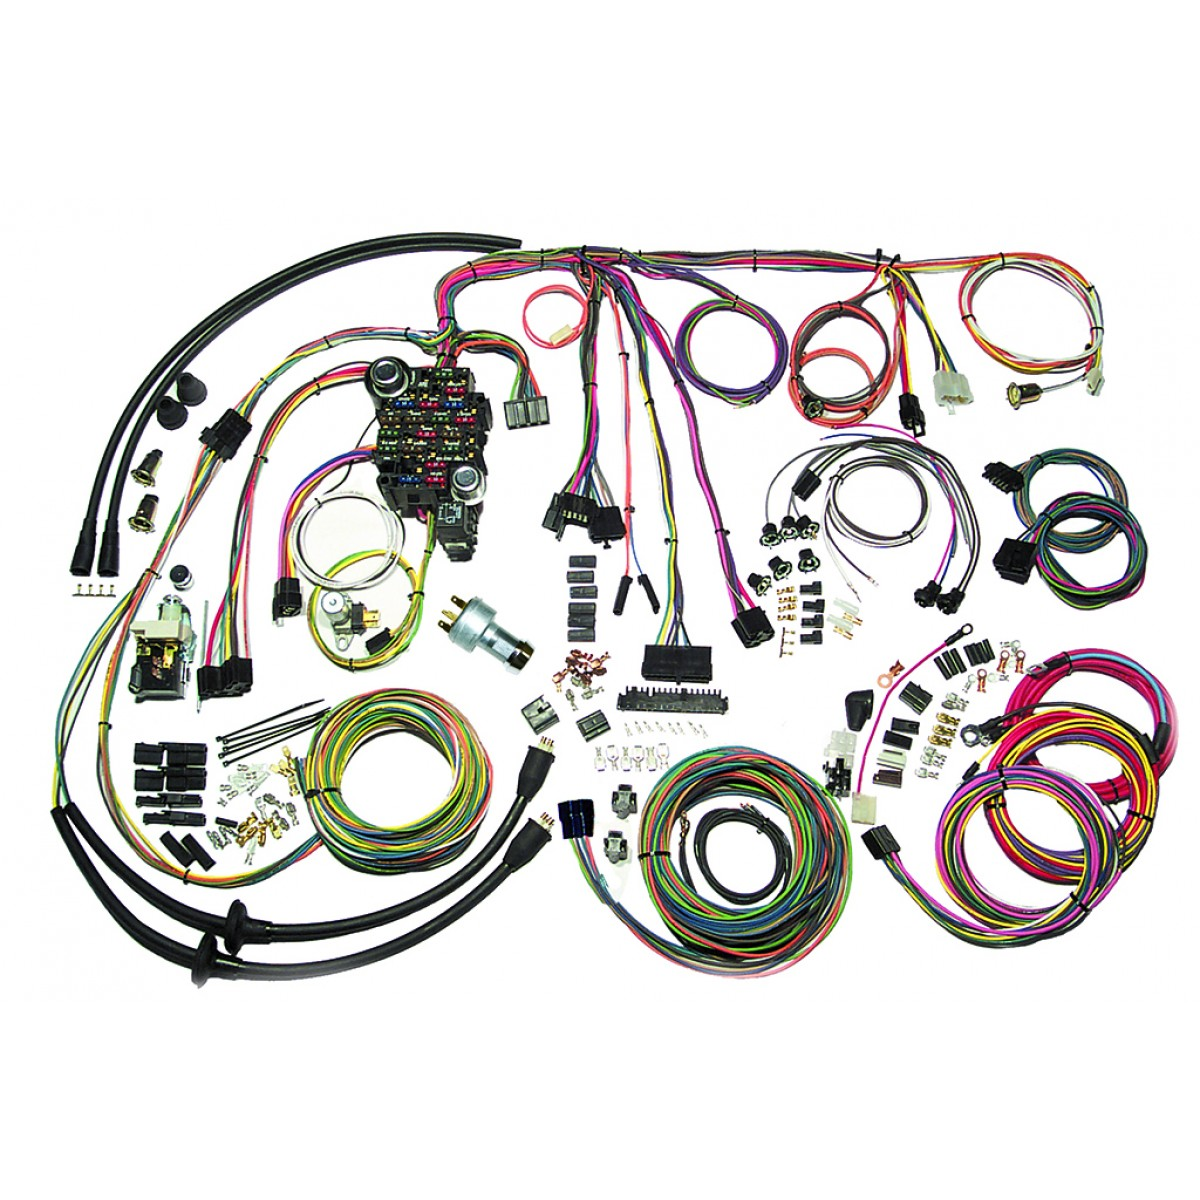 Admirable 57 Chevy Belair Wire Harness Complete Wiring Harness Kit 1957 Wiring Cloud Intelaidewilluminateatxorg